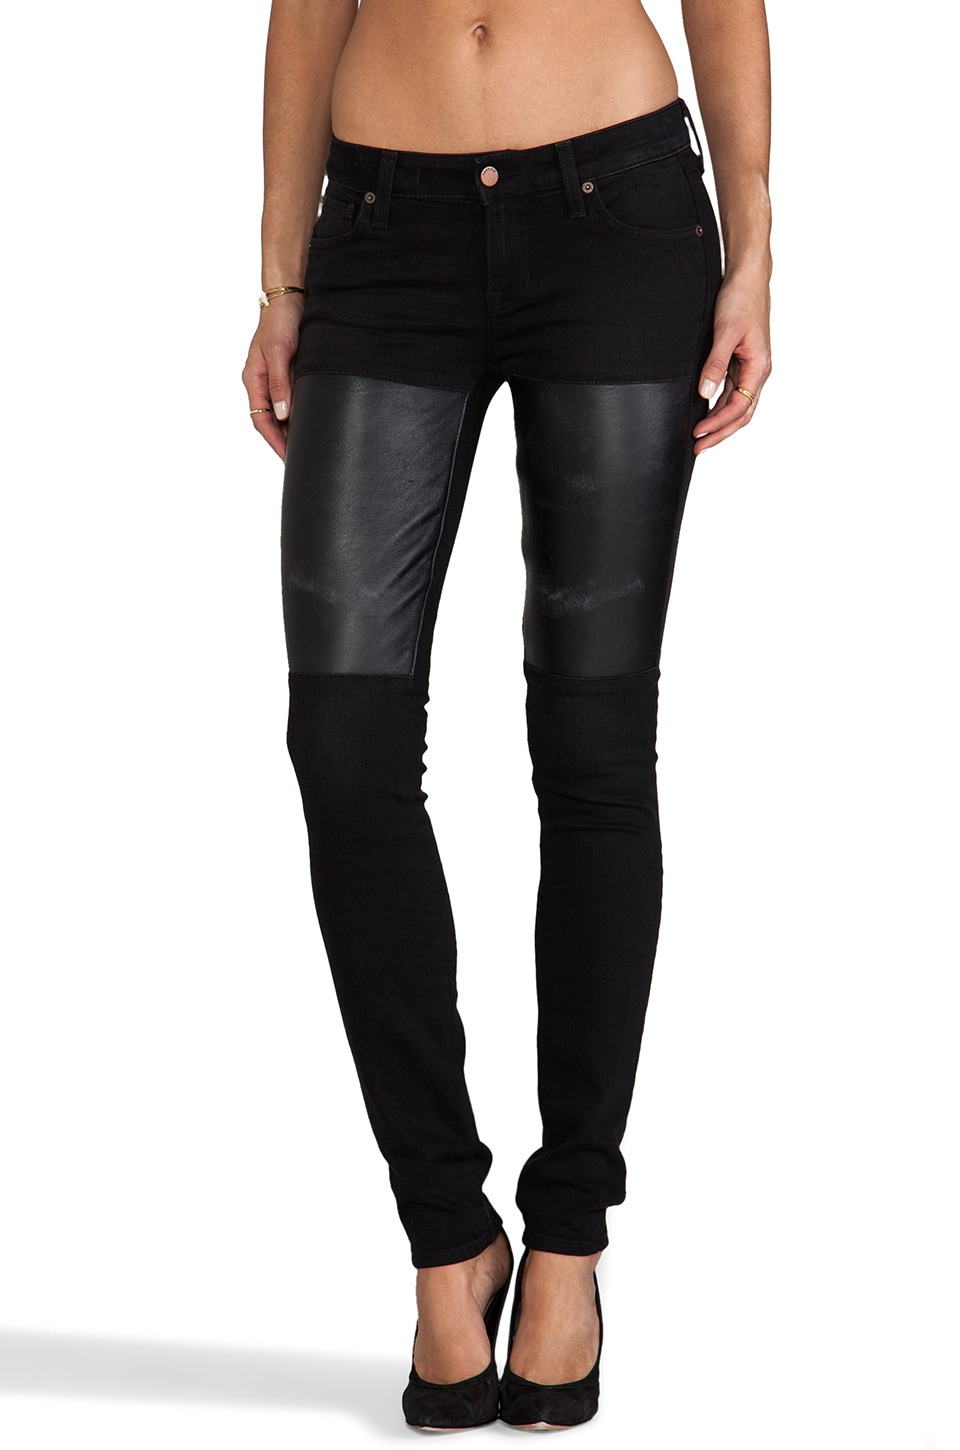 TEXTILE Elizabeth and James Jett Distressed Skinny with Leather Patch in Midnight